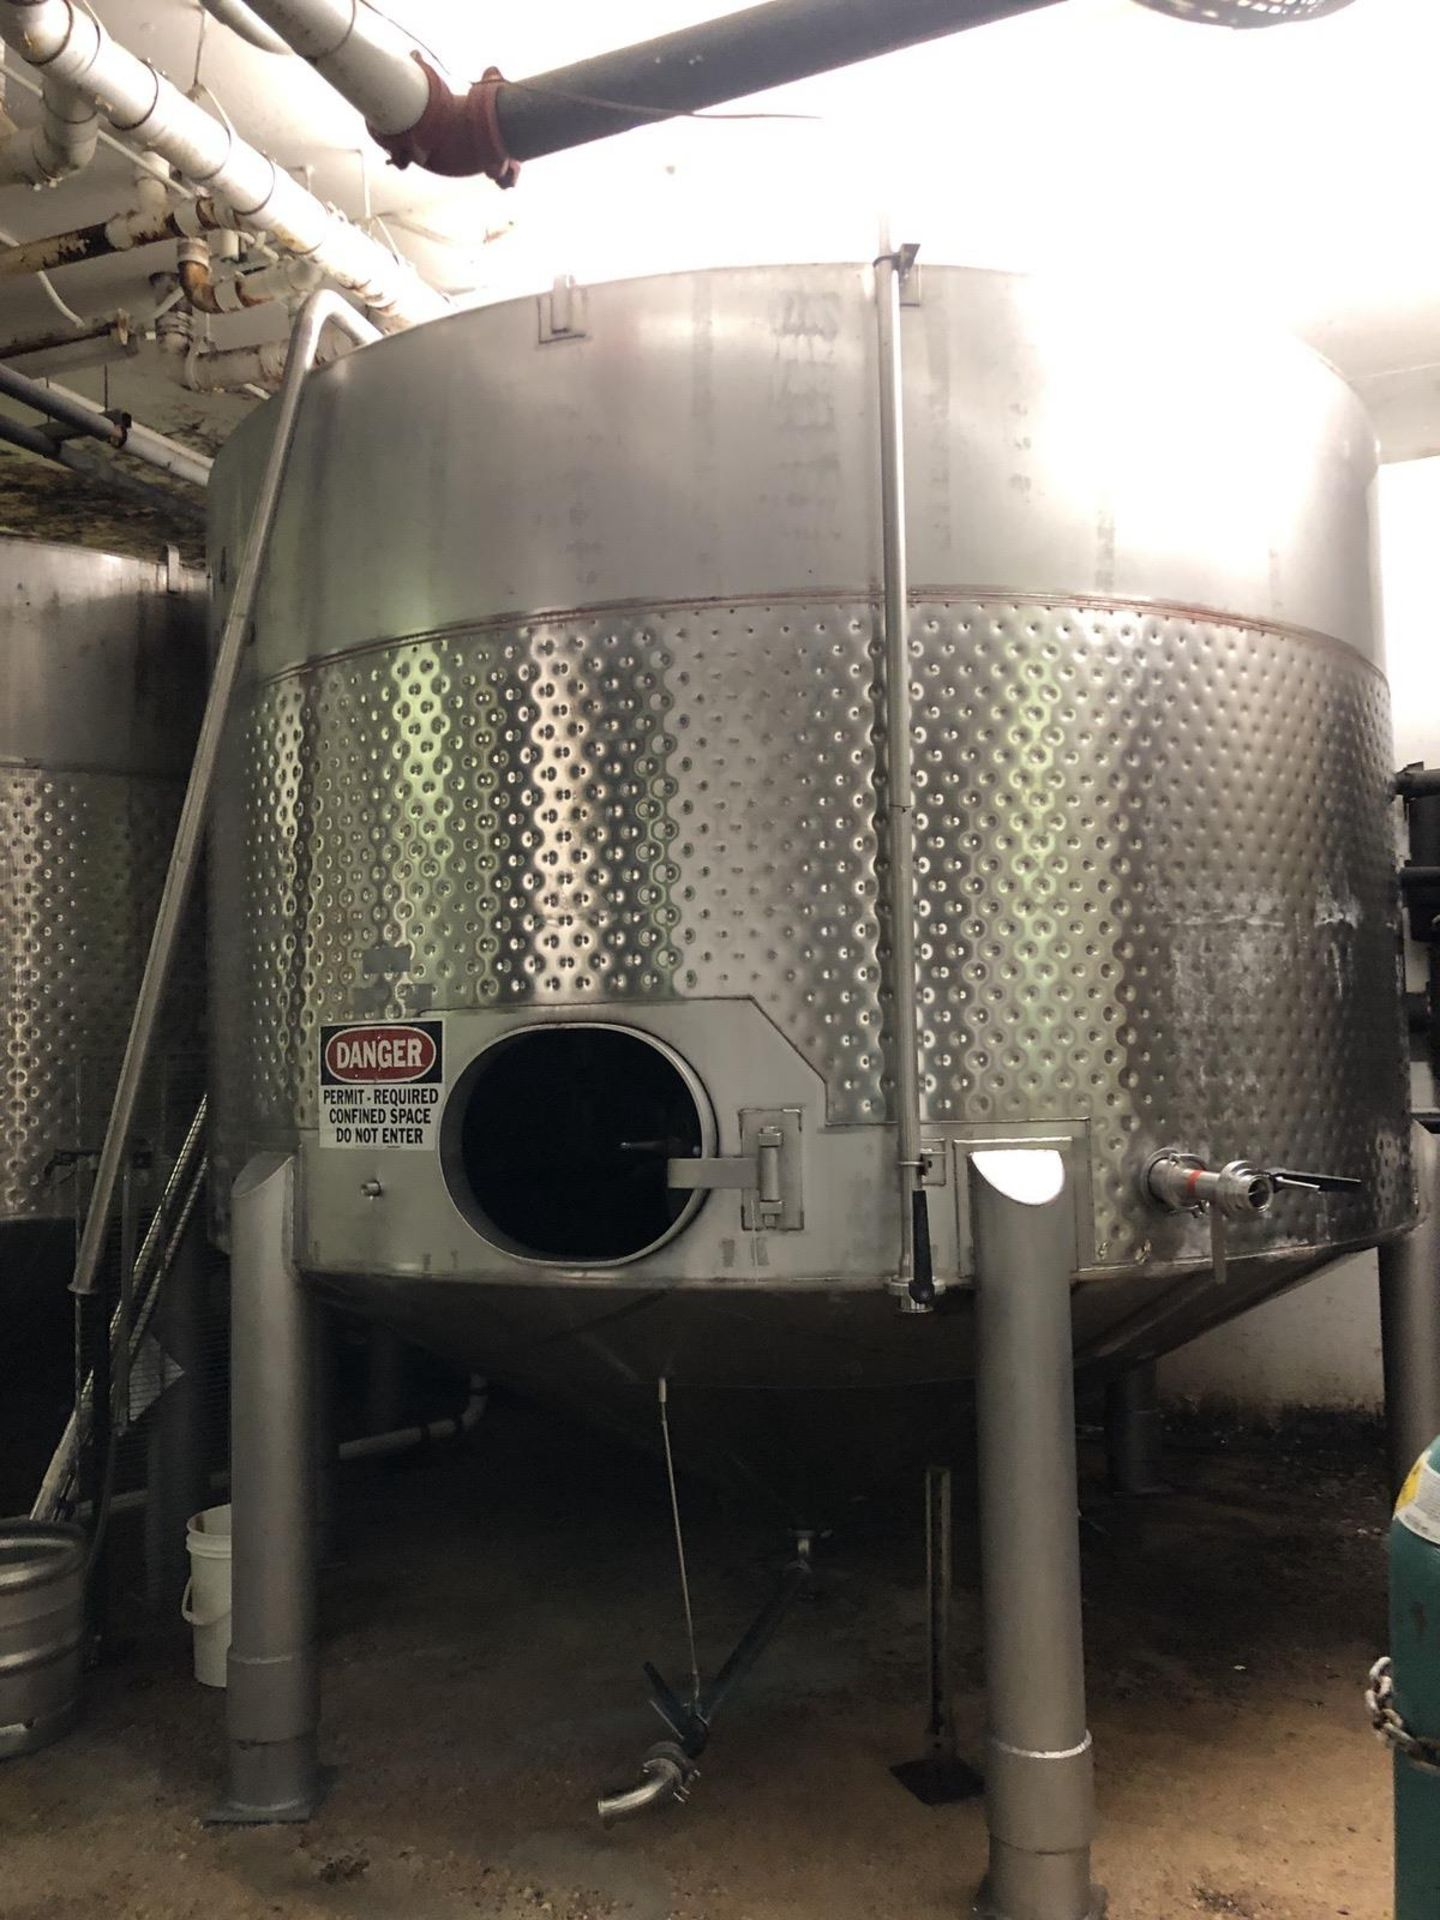 Lot 19 - Santa Rosa 100 BBL Fermenter, Cone Bottom, Glycol Dimple Jacketed, Stainless Steel, | Rig Fee: $2000